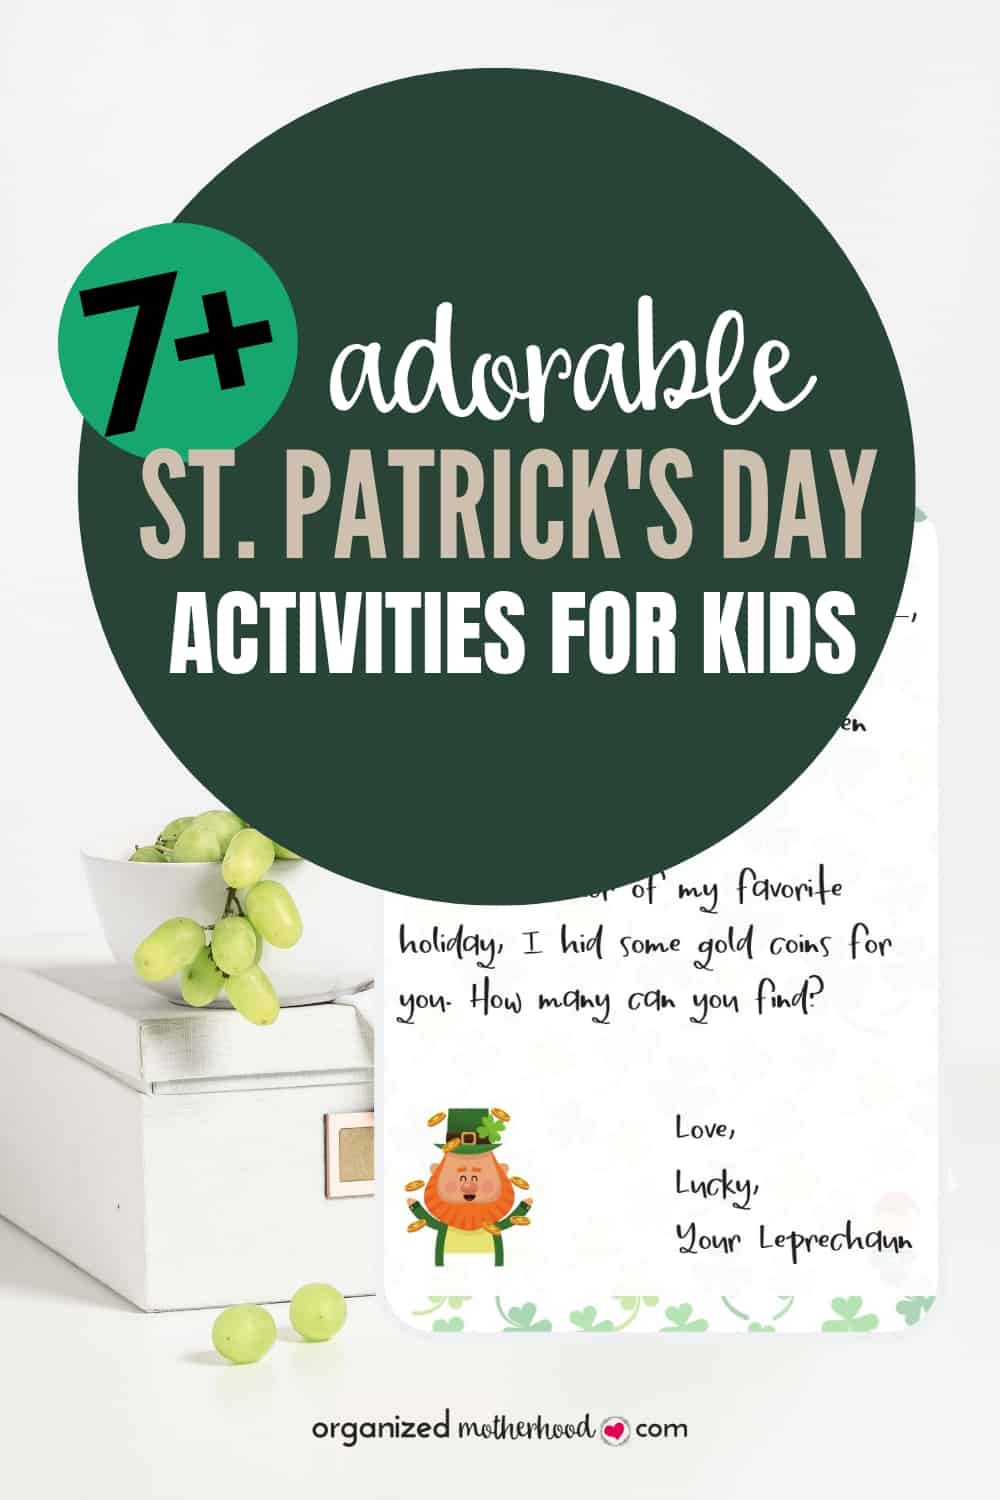 These fun activities for kids are perfect to celebrate the St. Patrick's Day holiday.